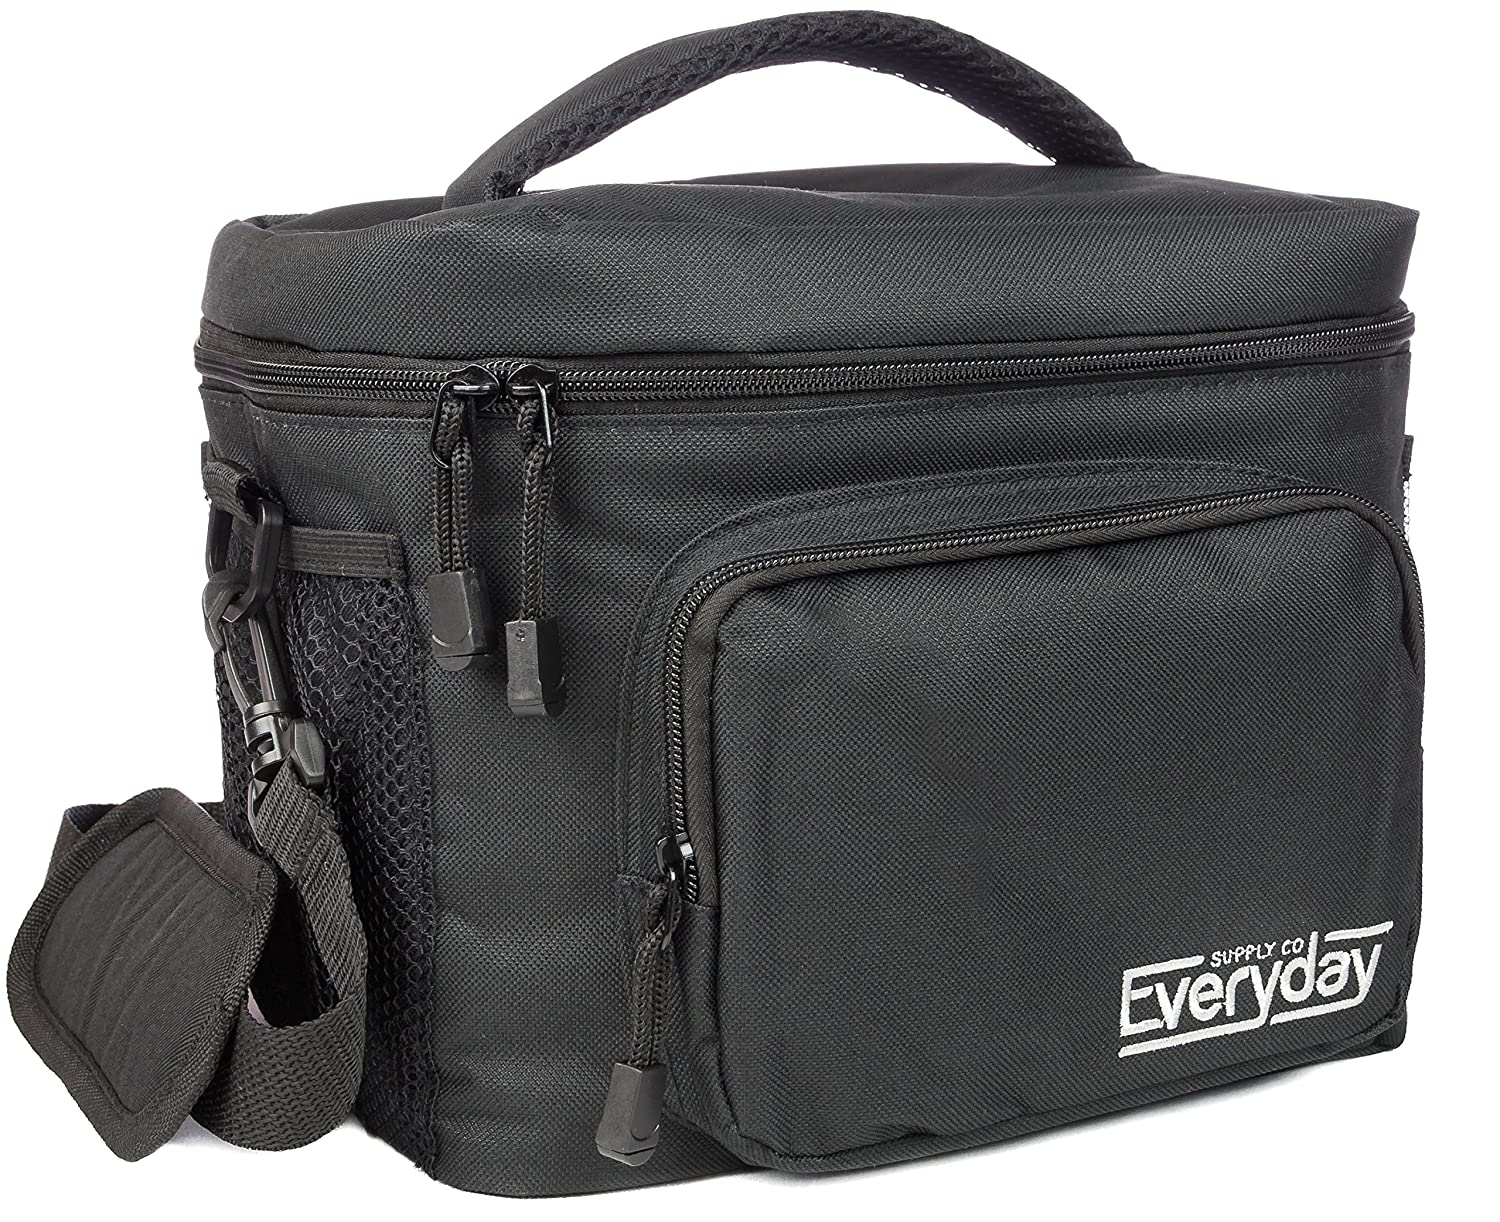 Insulated Lunch Box / Bag - Freezer Safe, Nylon Durability, Zip Closure - Cooler Lunch Bag for Men, Women and Kids - Locks in Heat & Cold Everyday Supply Co